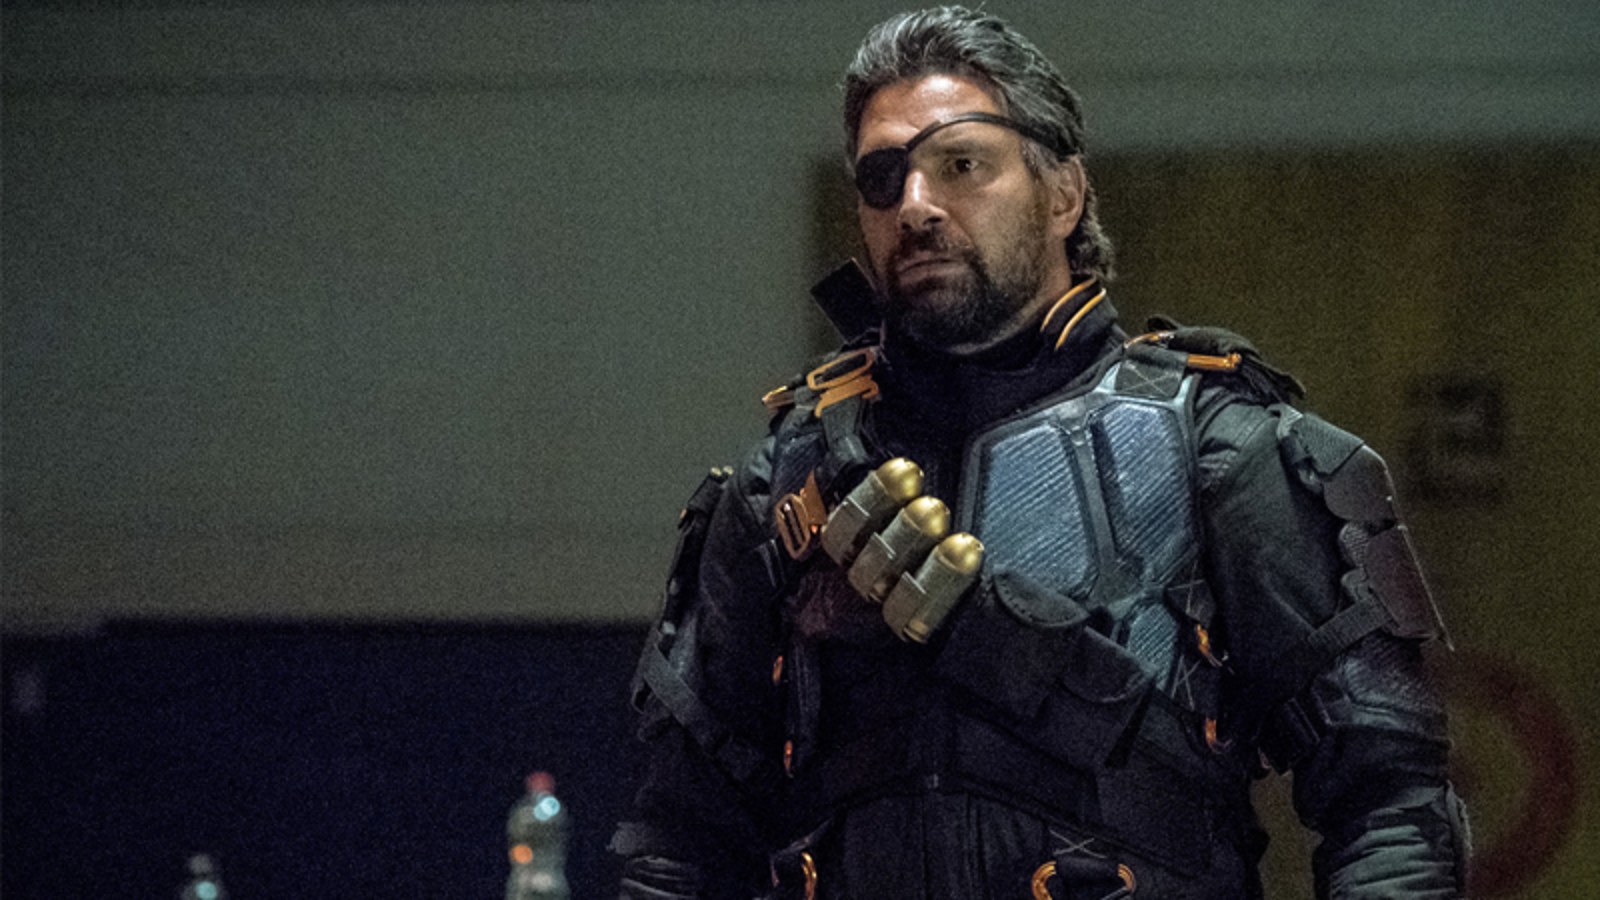 And Now, Arrow's Back to Not Being Able to Use Deathstroke Again